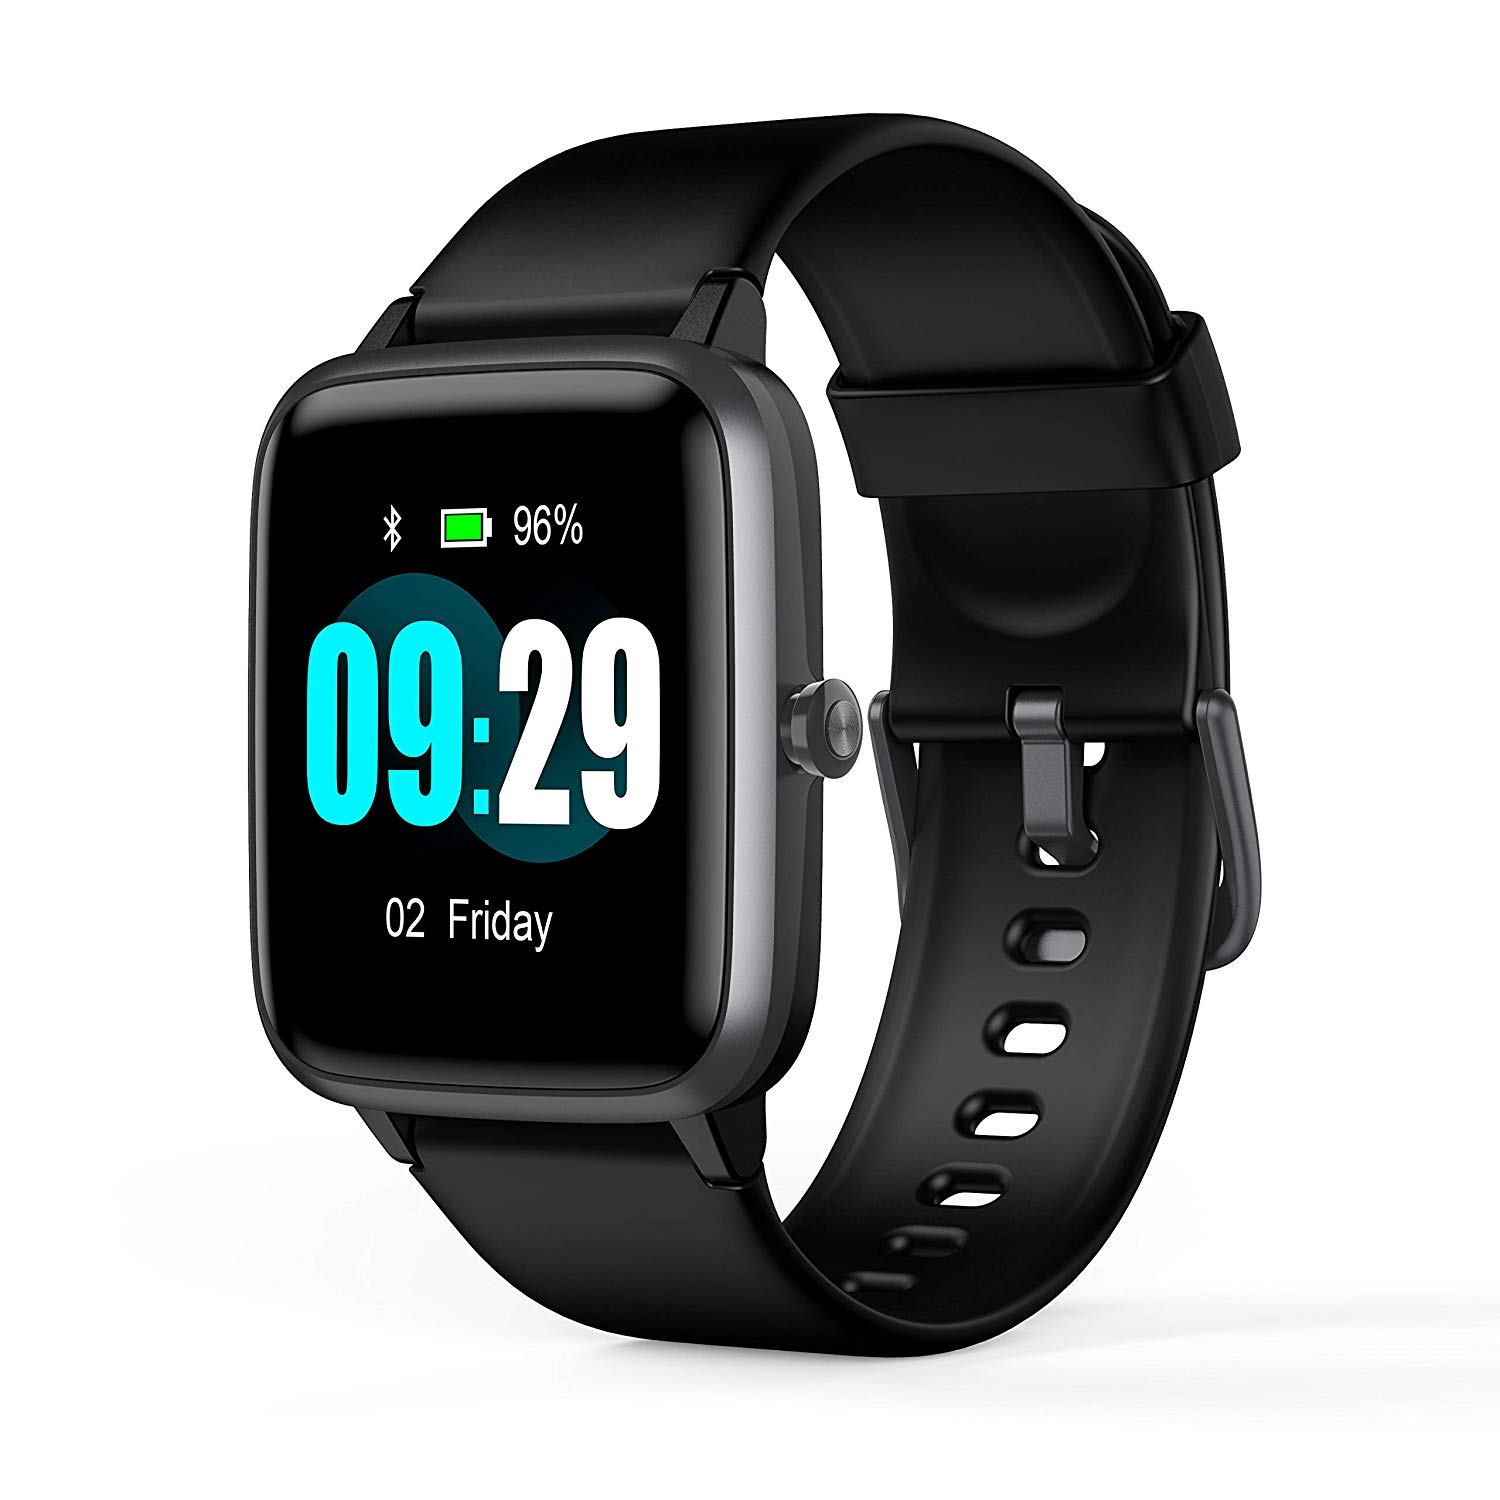 Smart Watch for Android iOS Phone - golden birthday gift ideas for her